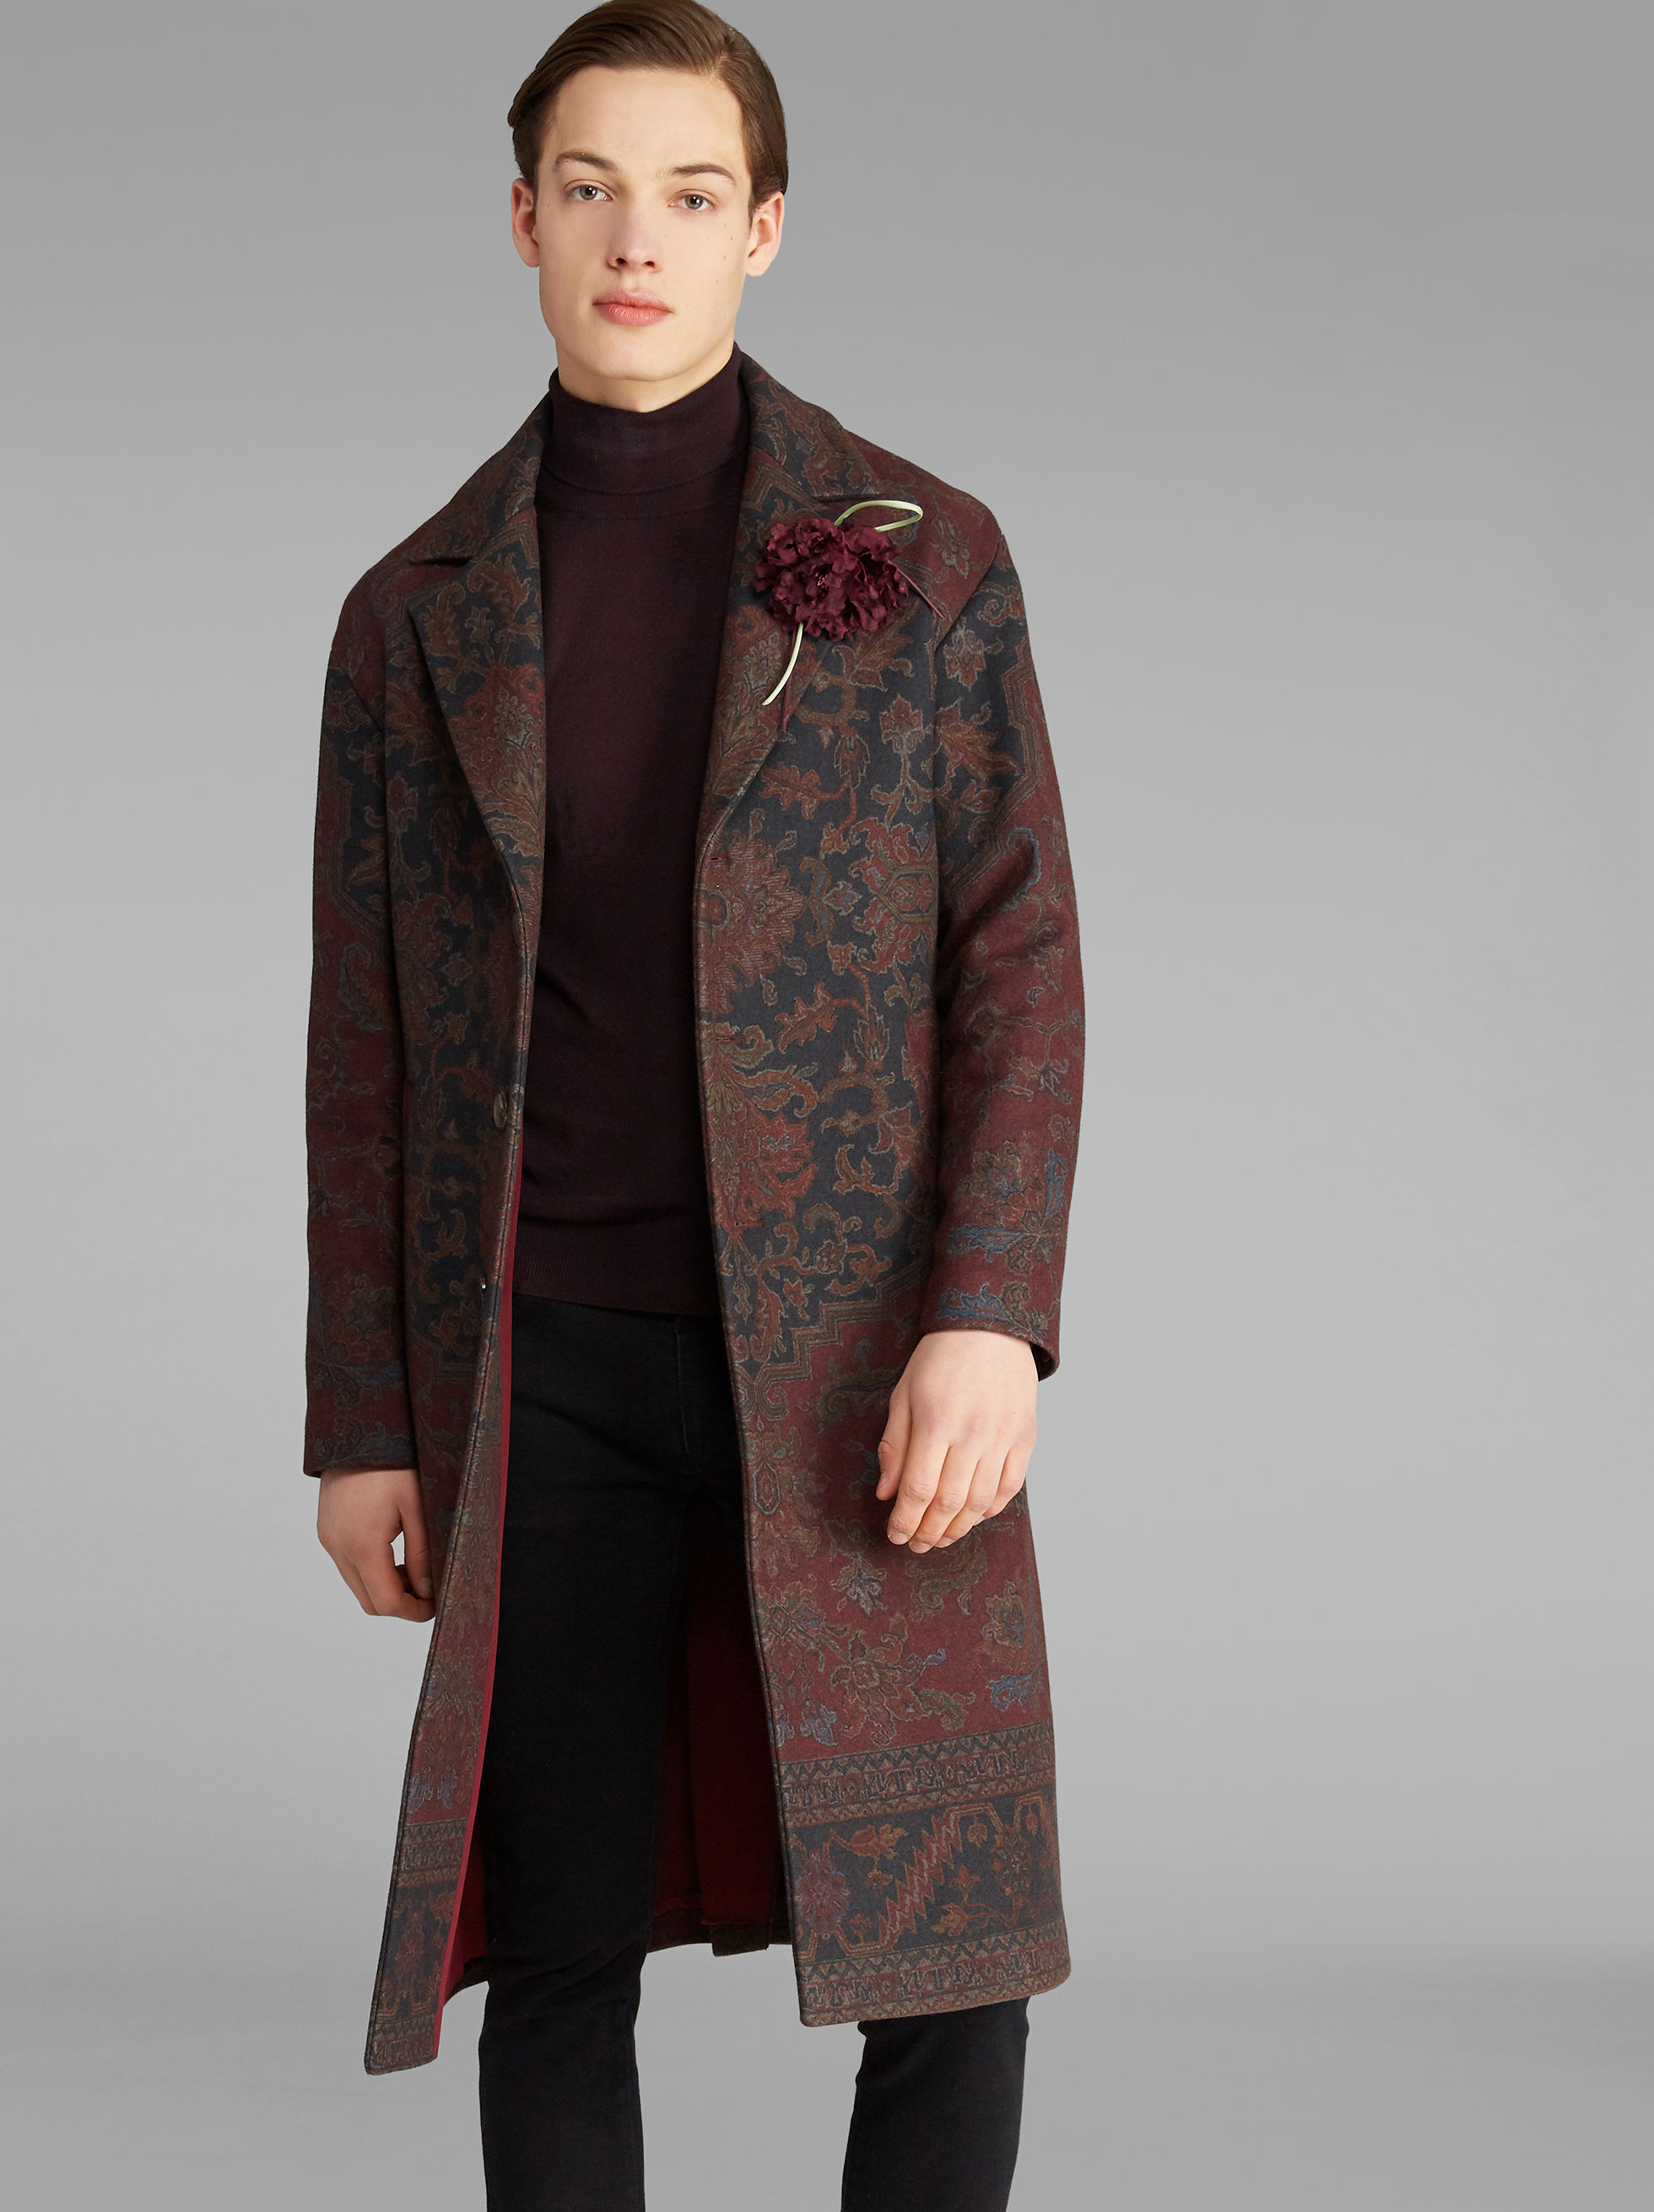 DECONSTRUCTED CARPET-PRINT COAT